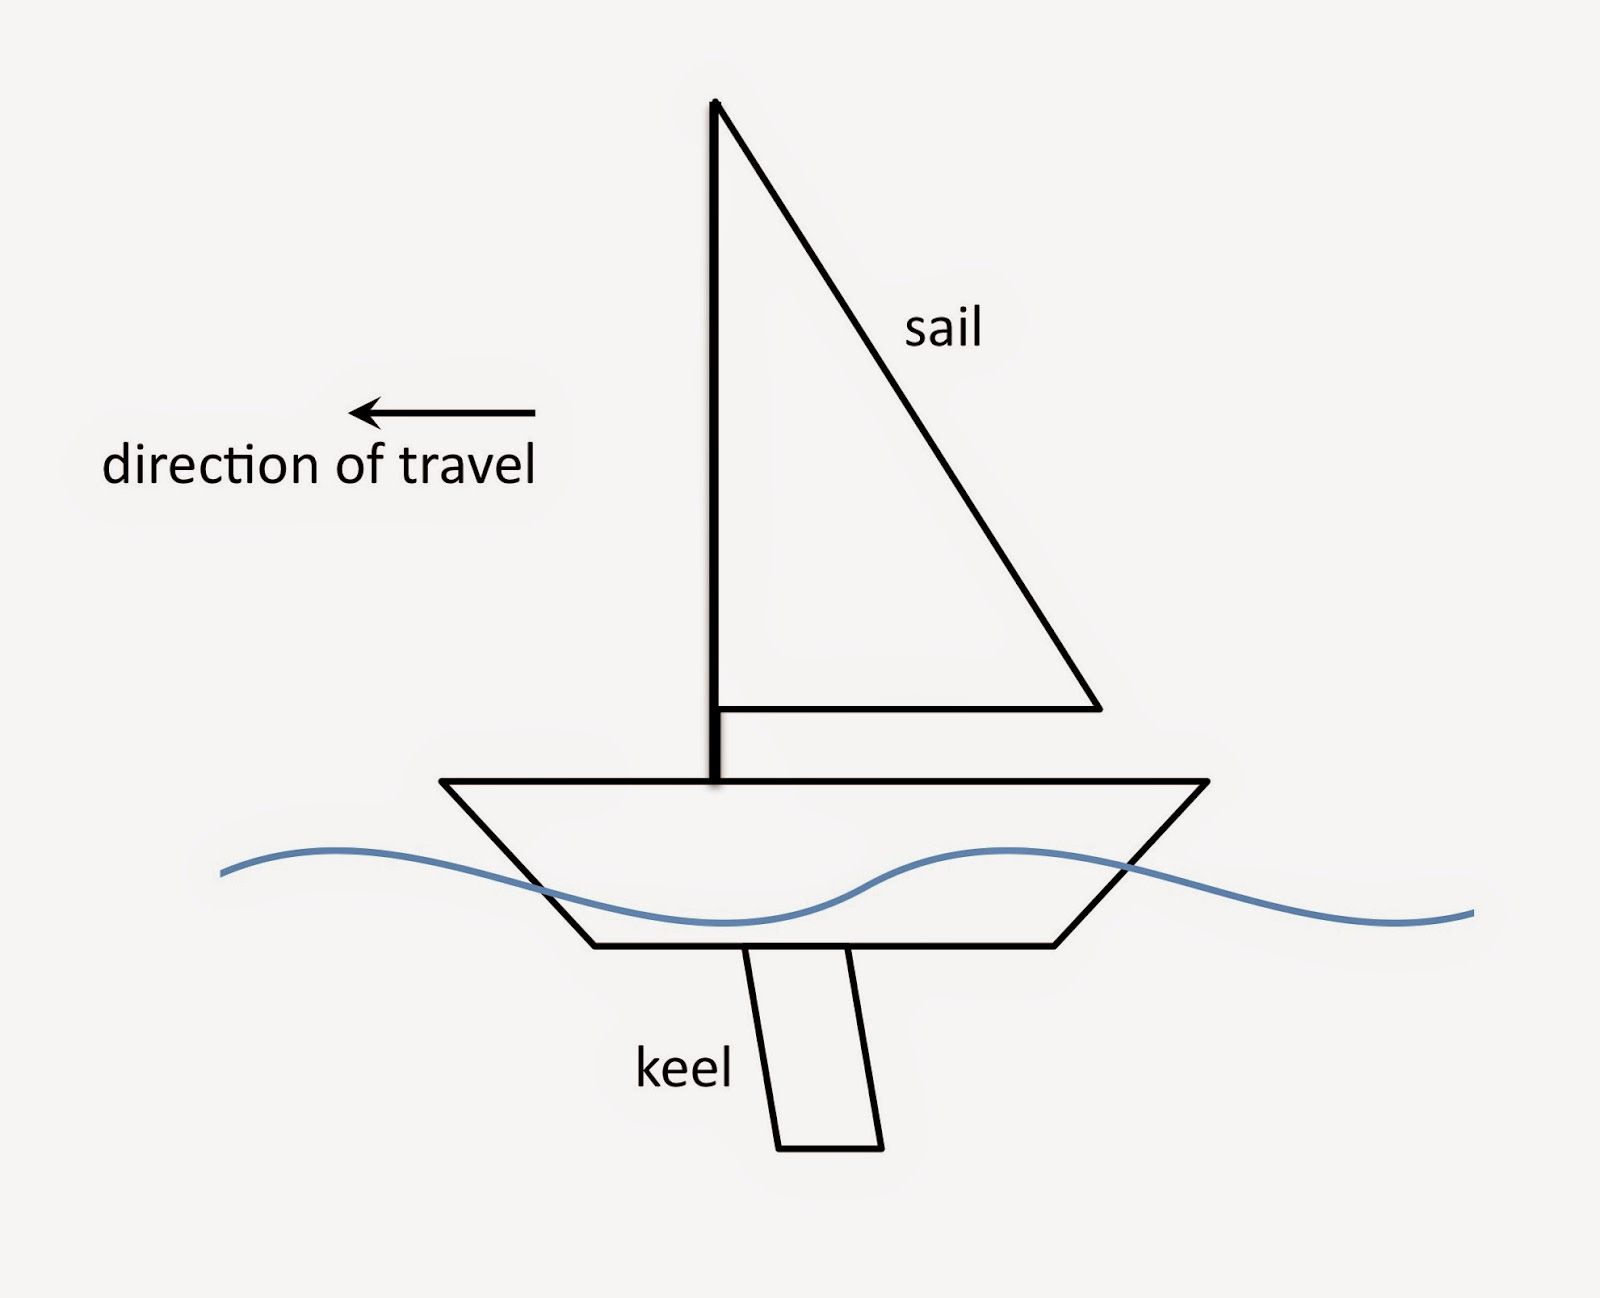 Physics buzz the physics of sailing how does a sailboat move upwind a basic sailboat diagram credit tamela maciel jeuxipadfo Image collections